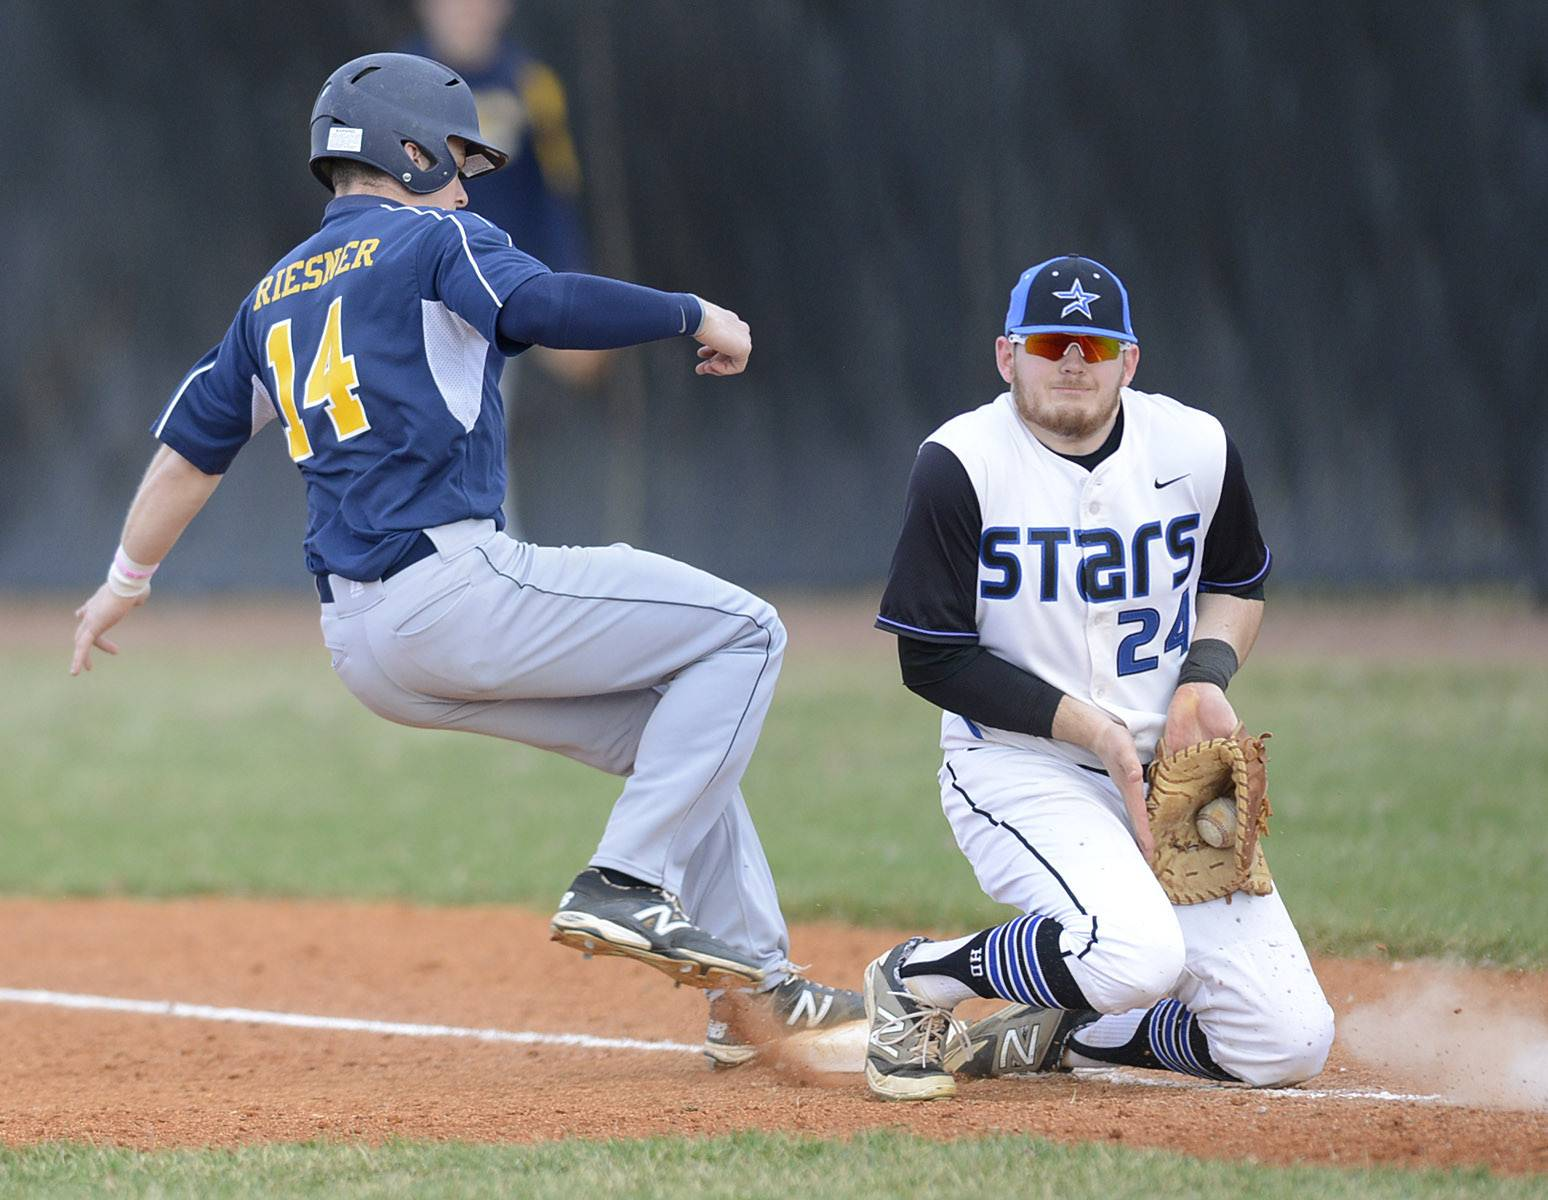 Neuqua Valley's Mike Riesner is safe back on first base from St. Charles North's Jack Dennis in the third inning on Friday, April 11.